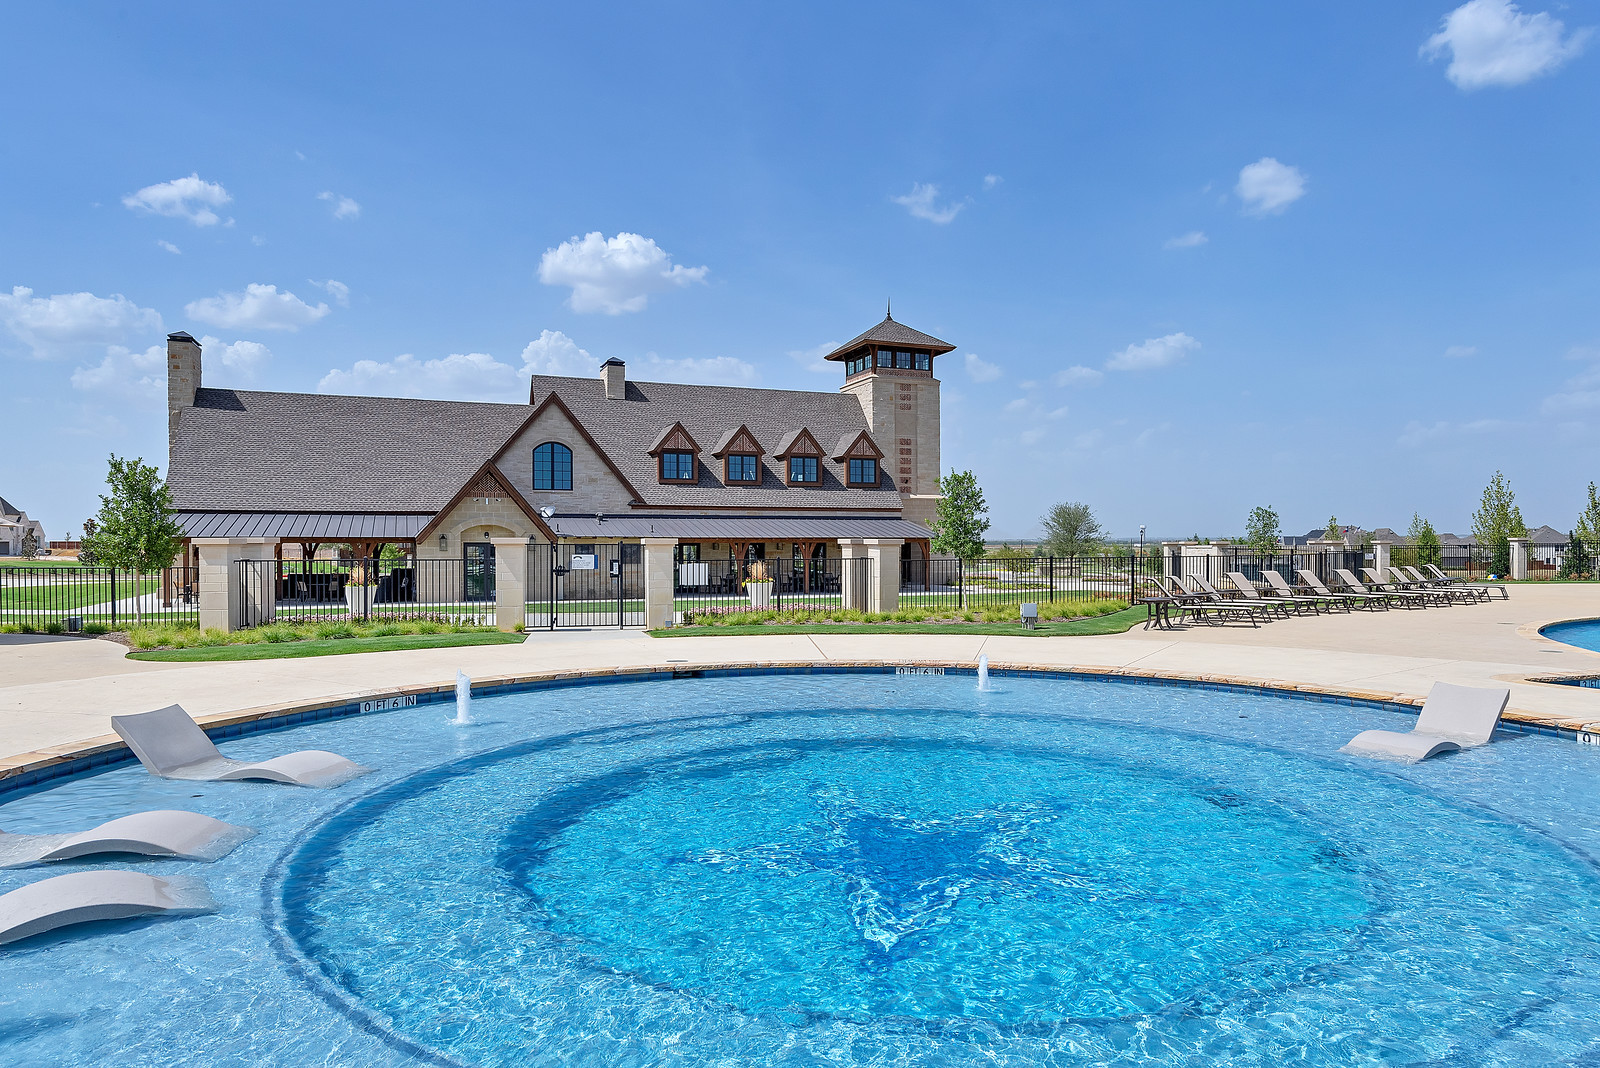 Star Trail Commercial Pool Prosper Tx By Gold Medal Pools